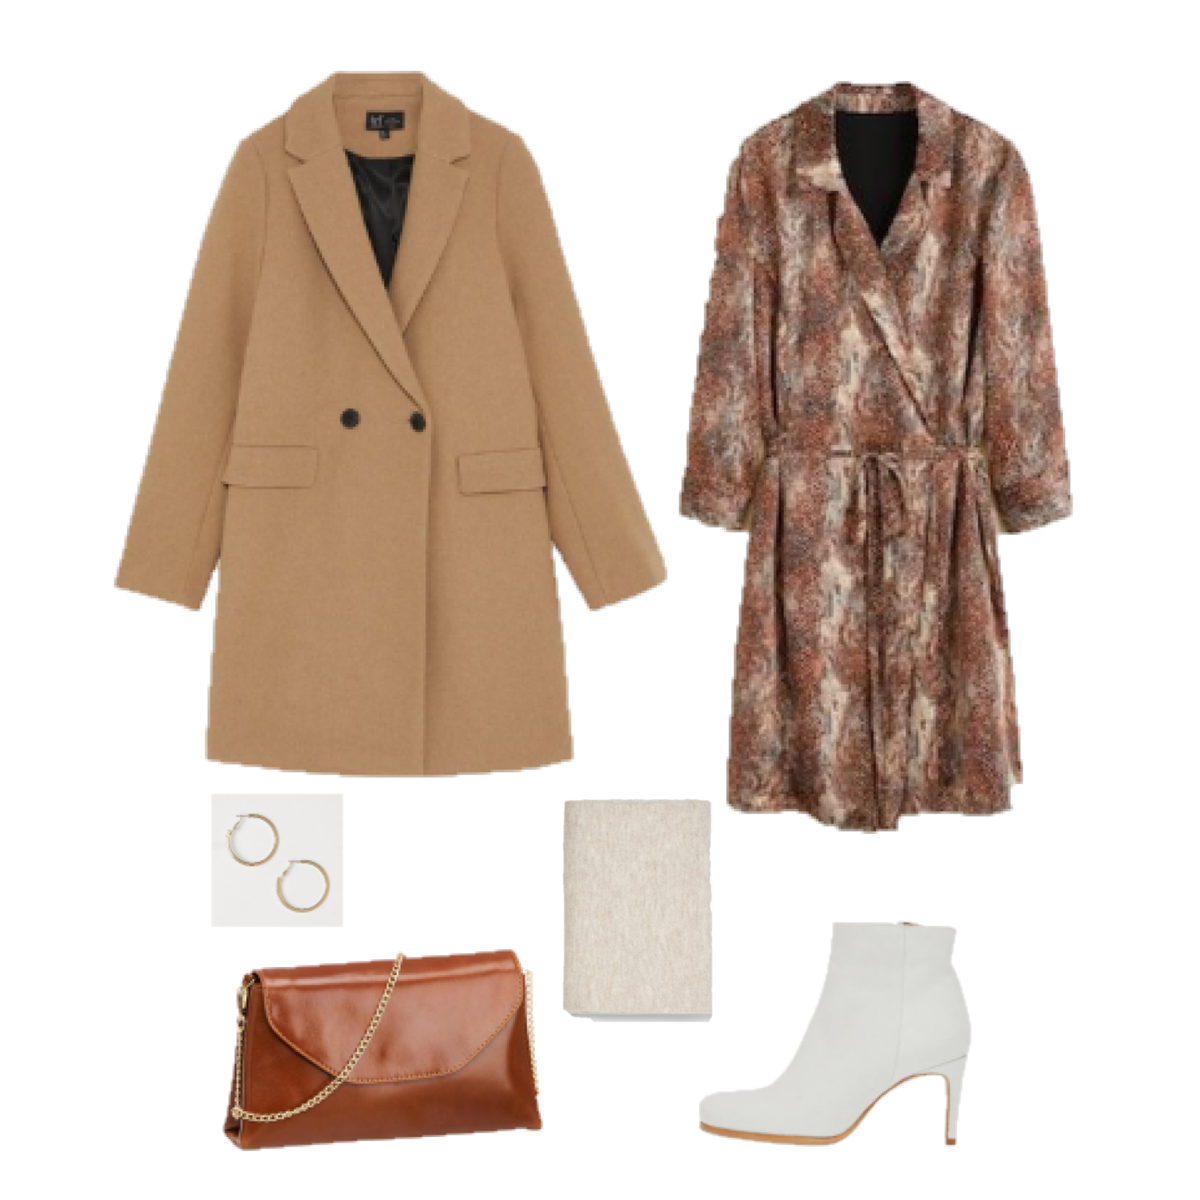 Outfit of the Day: Animal Print in Brown Tones